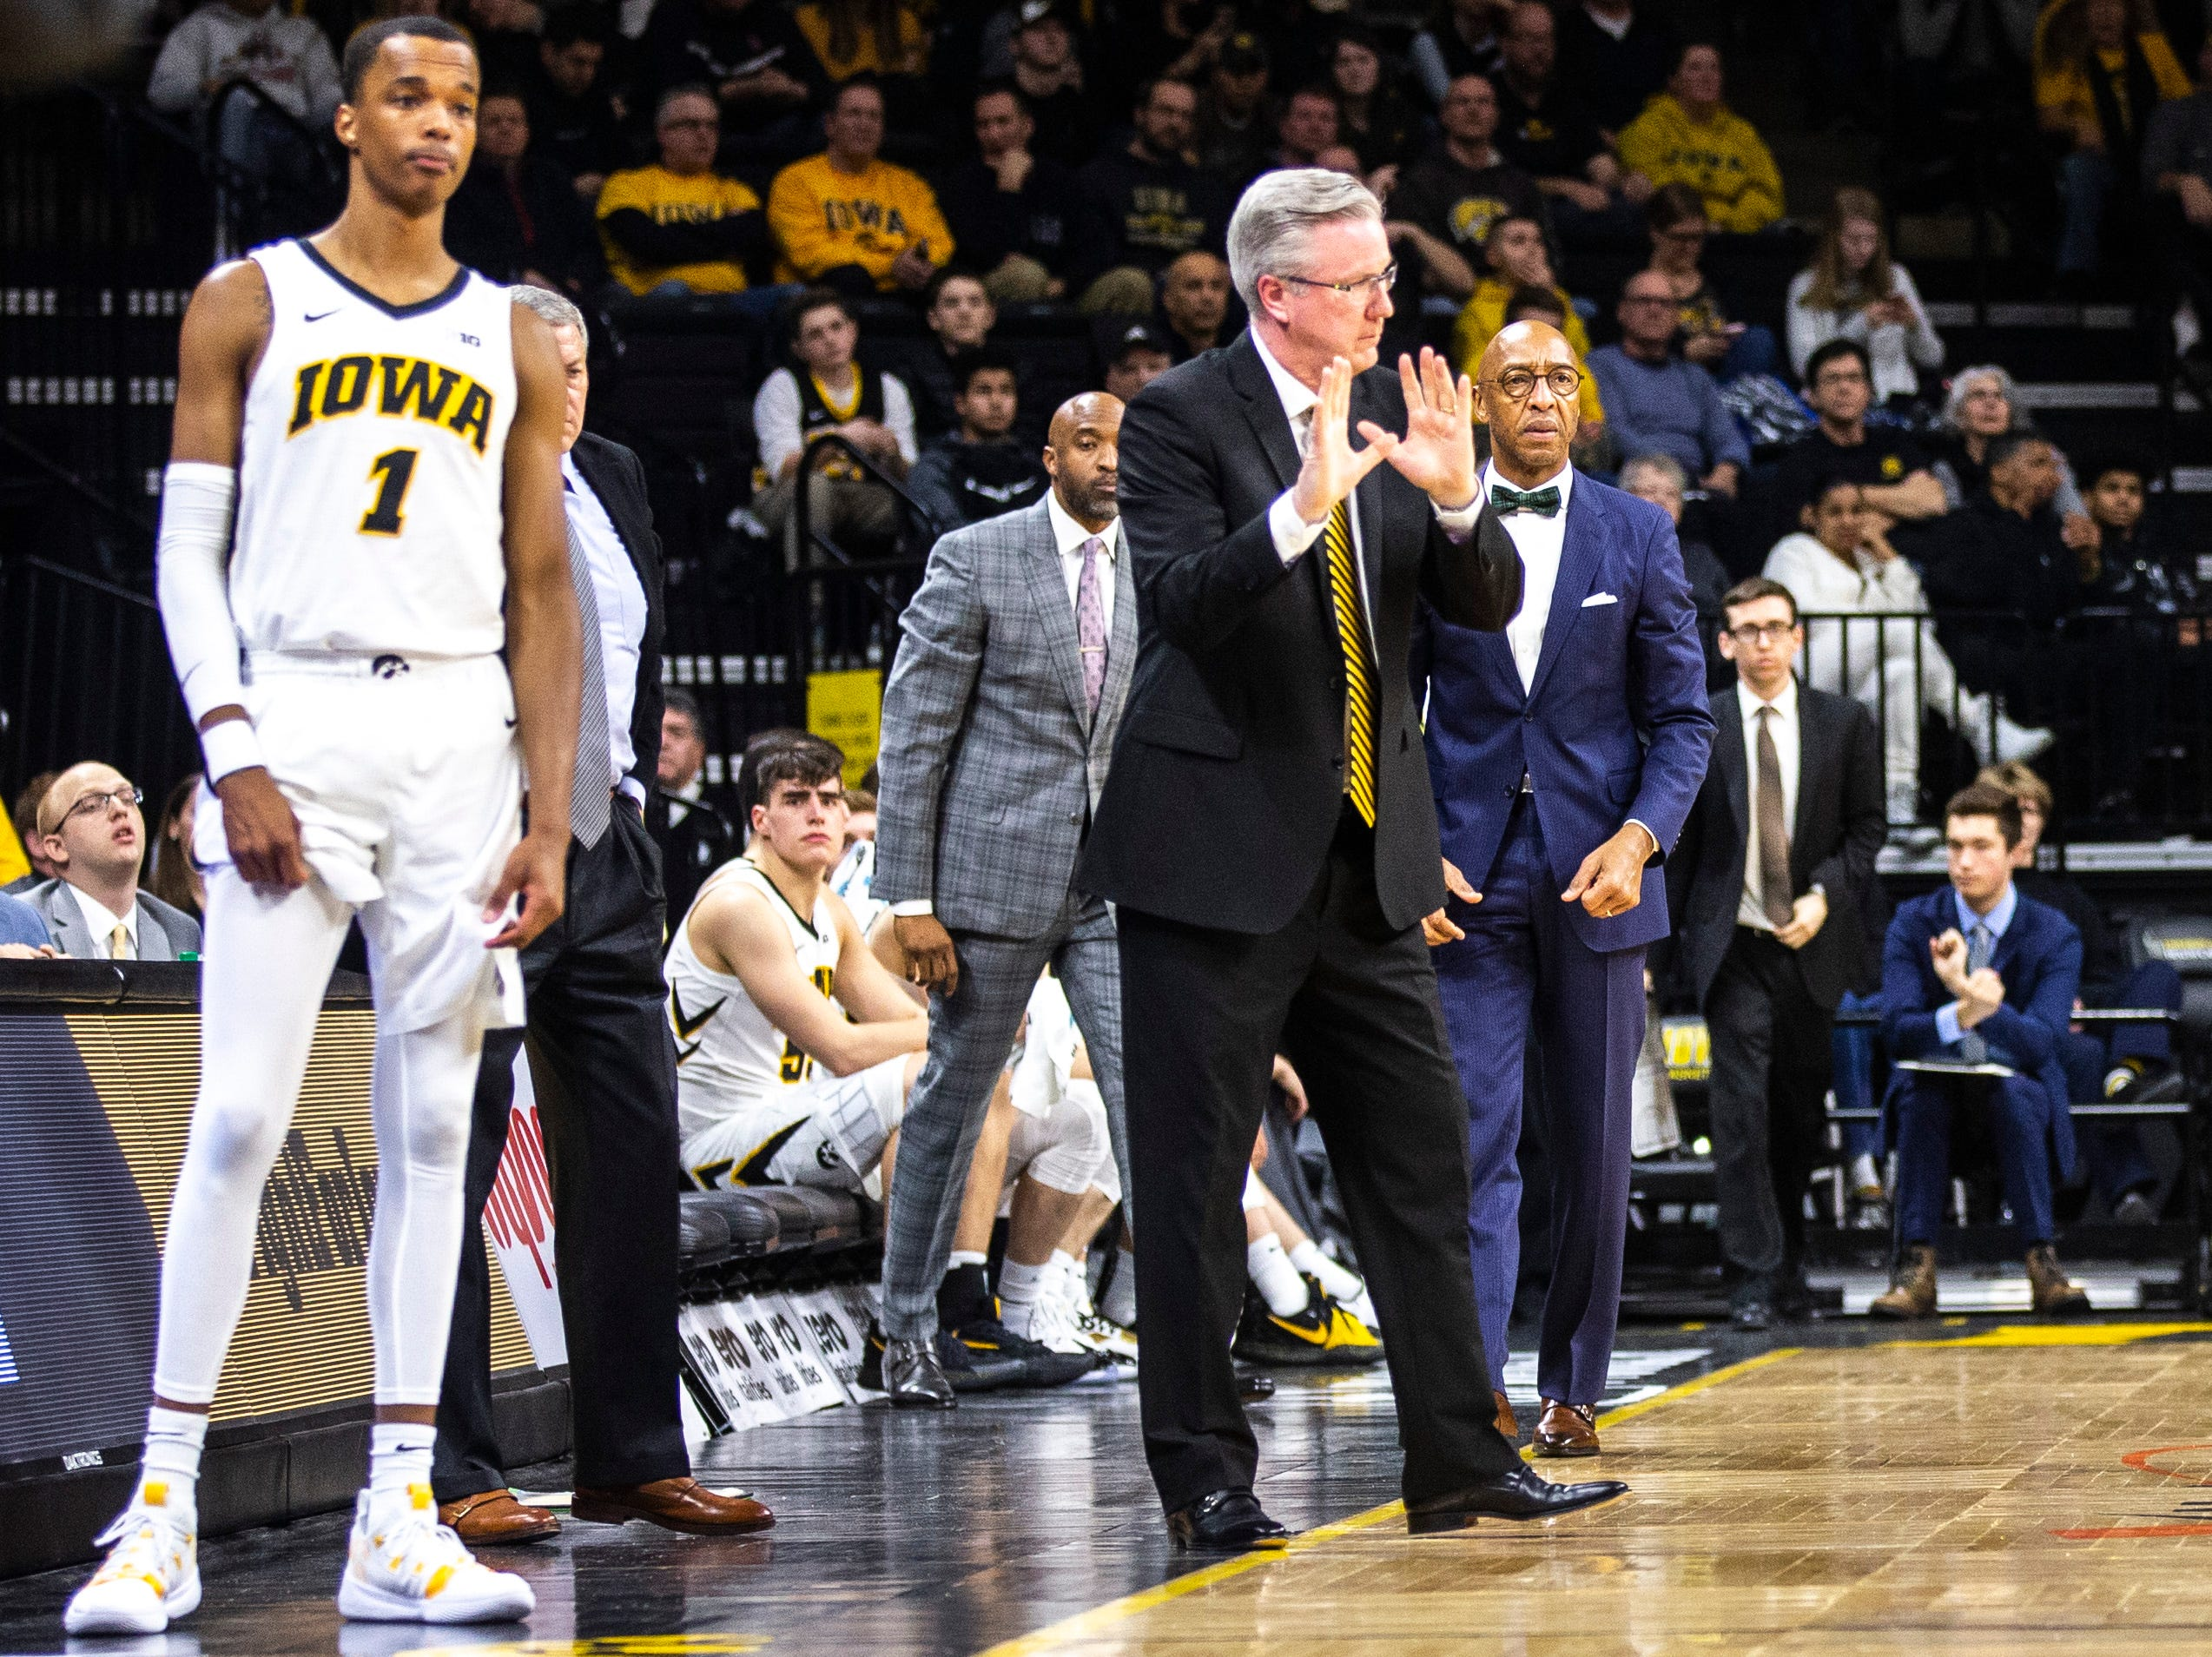 Iowa men's basketball head coach Fran McCaffery reacts to a call while Iowa guard Maishe Dailey (1) looks on during a NCAA Big Ten Conference men's basketball game on Sunday, Feb. 10, 2019 at Carver-Hawkeye Arena in Iowa City, Iowa.